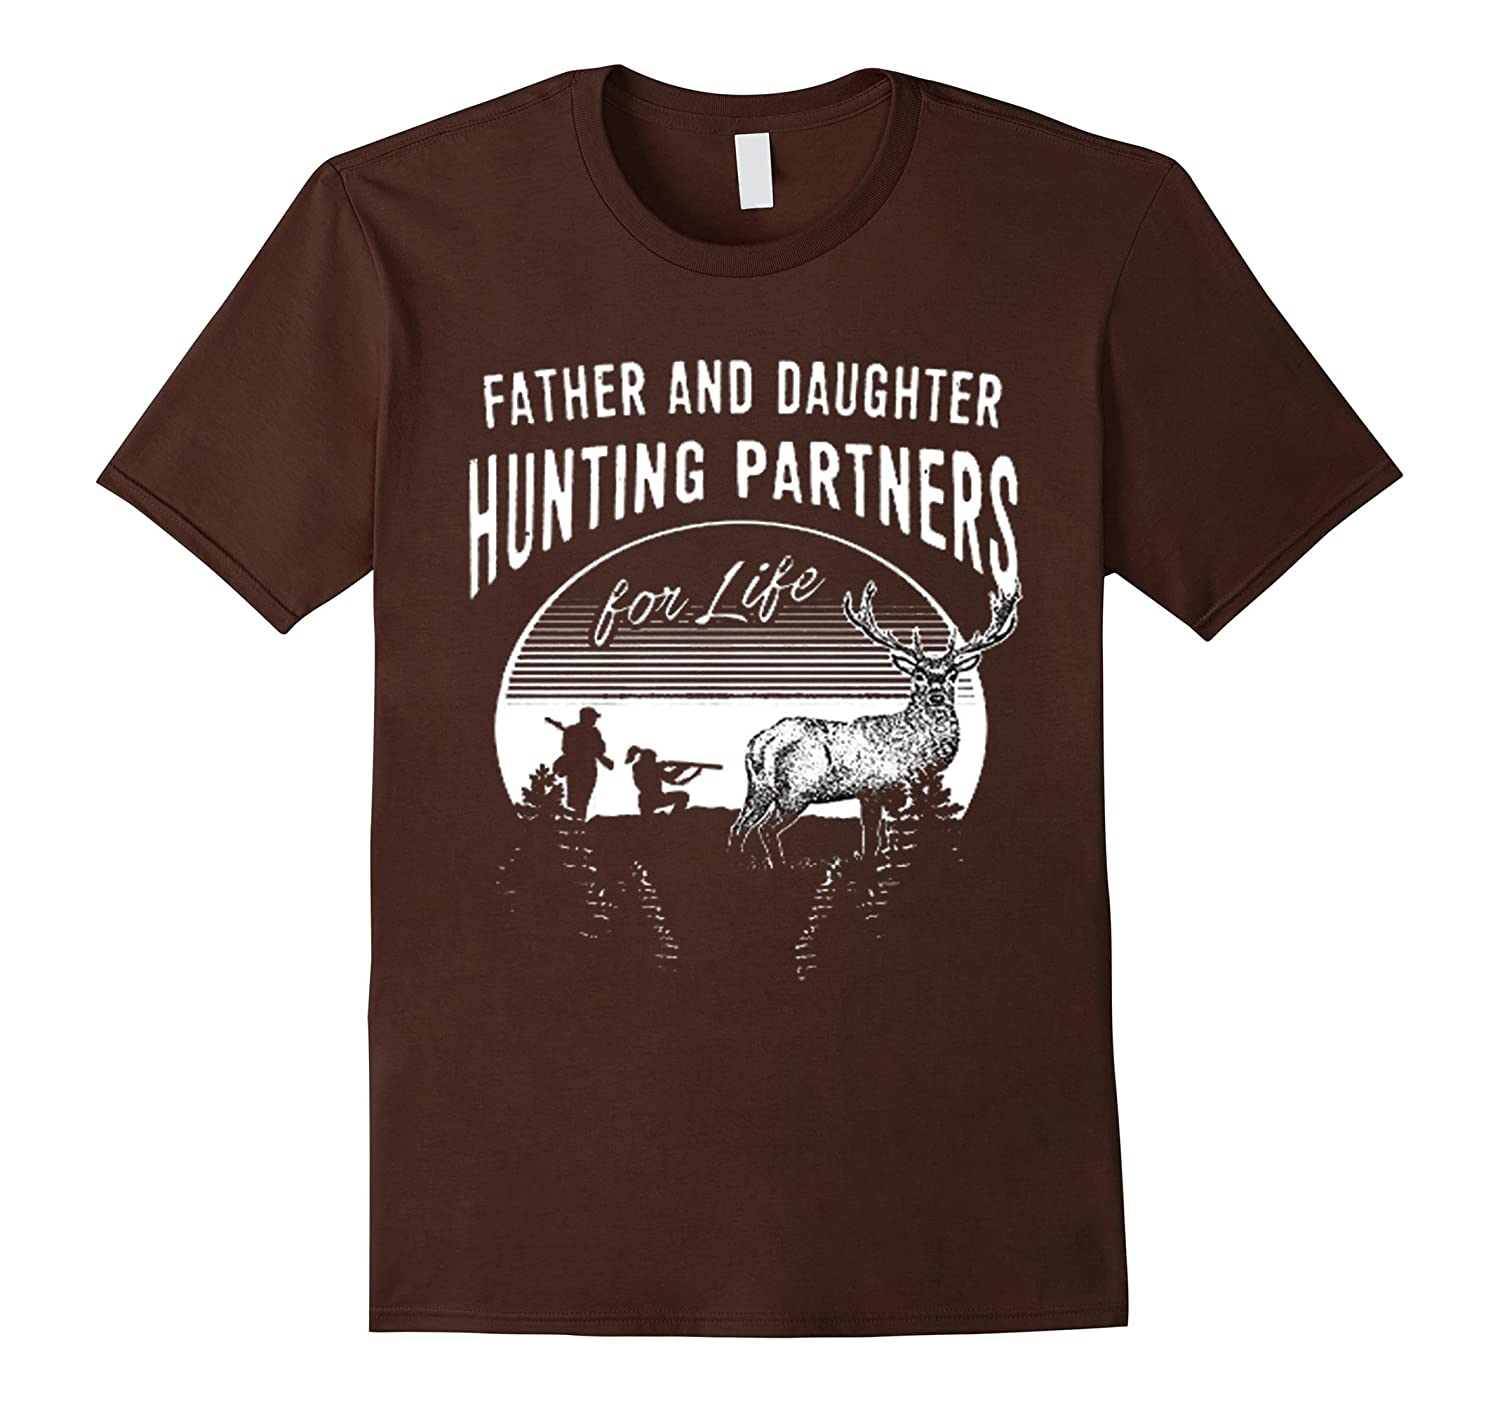 Father and daughter hunting t shirt christmas gift for dad for Christmas gifts for dad from daughter